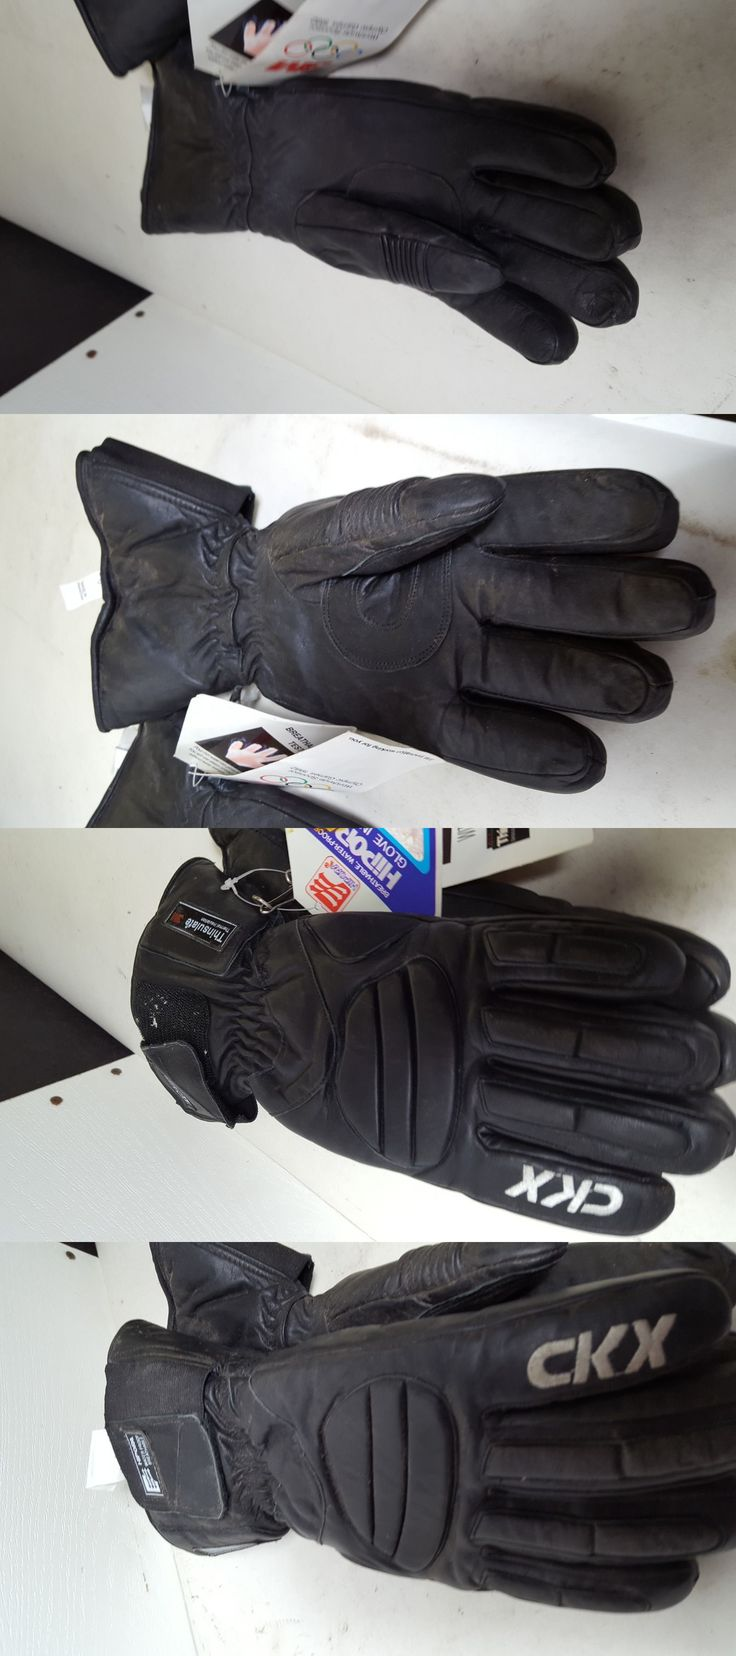 Other Winter Sport Accessories 21232: Small Ckx Snowmobile Gloves Black Free Shipping -> BUY IT NOW ONLY: $30 on eBay!